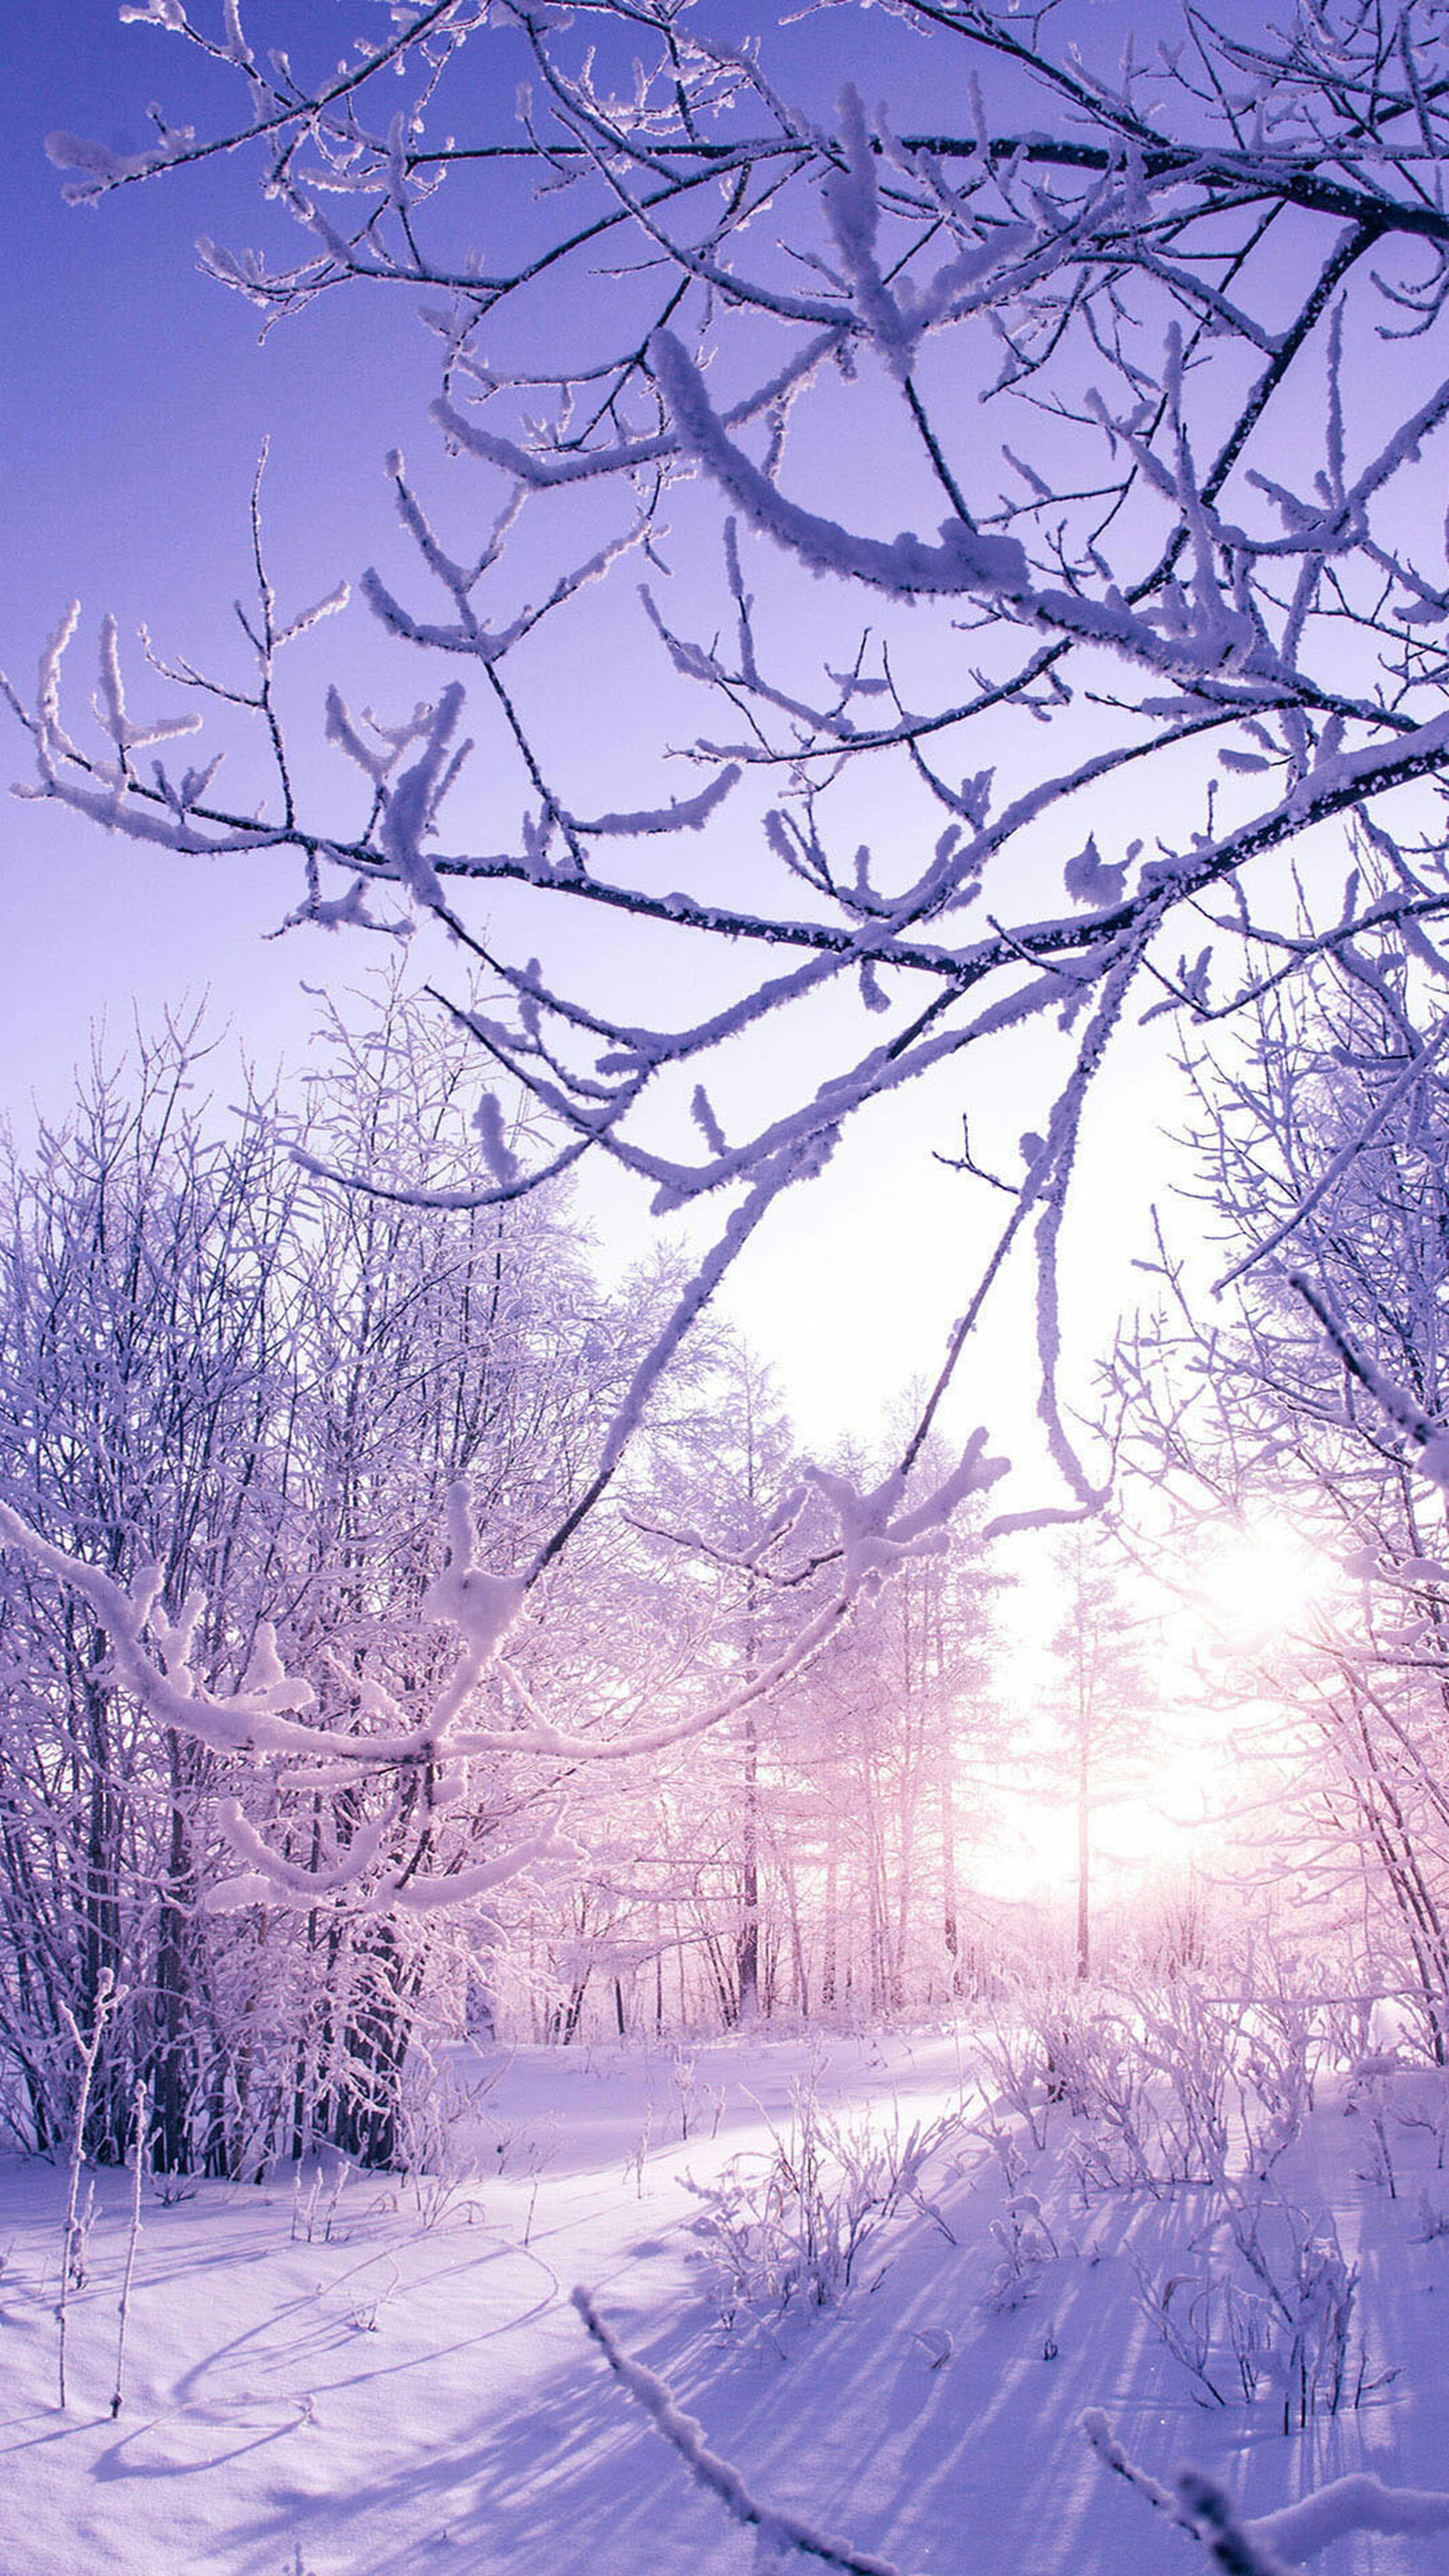 branch, bare tree, tree, cold temperature, winter, snow, tranquil scene, tranquility, season, scenics, weather, covering, beauty in nature, landscape, nature, non-urban scene, tree trunk, remote, day, sunbeam, solitude, sky, outdoors, woodland, no people, majestic, tourism